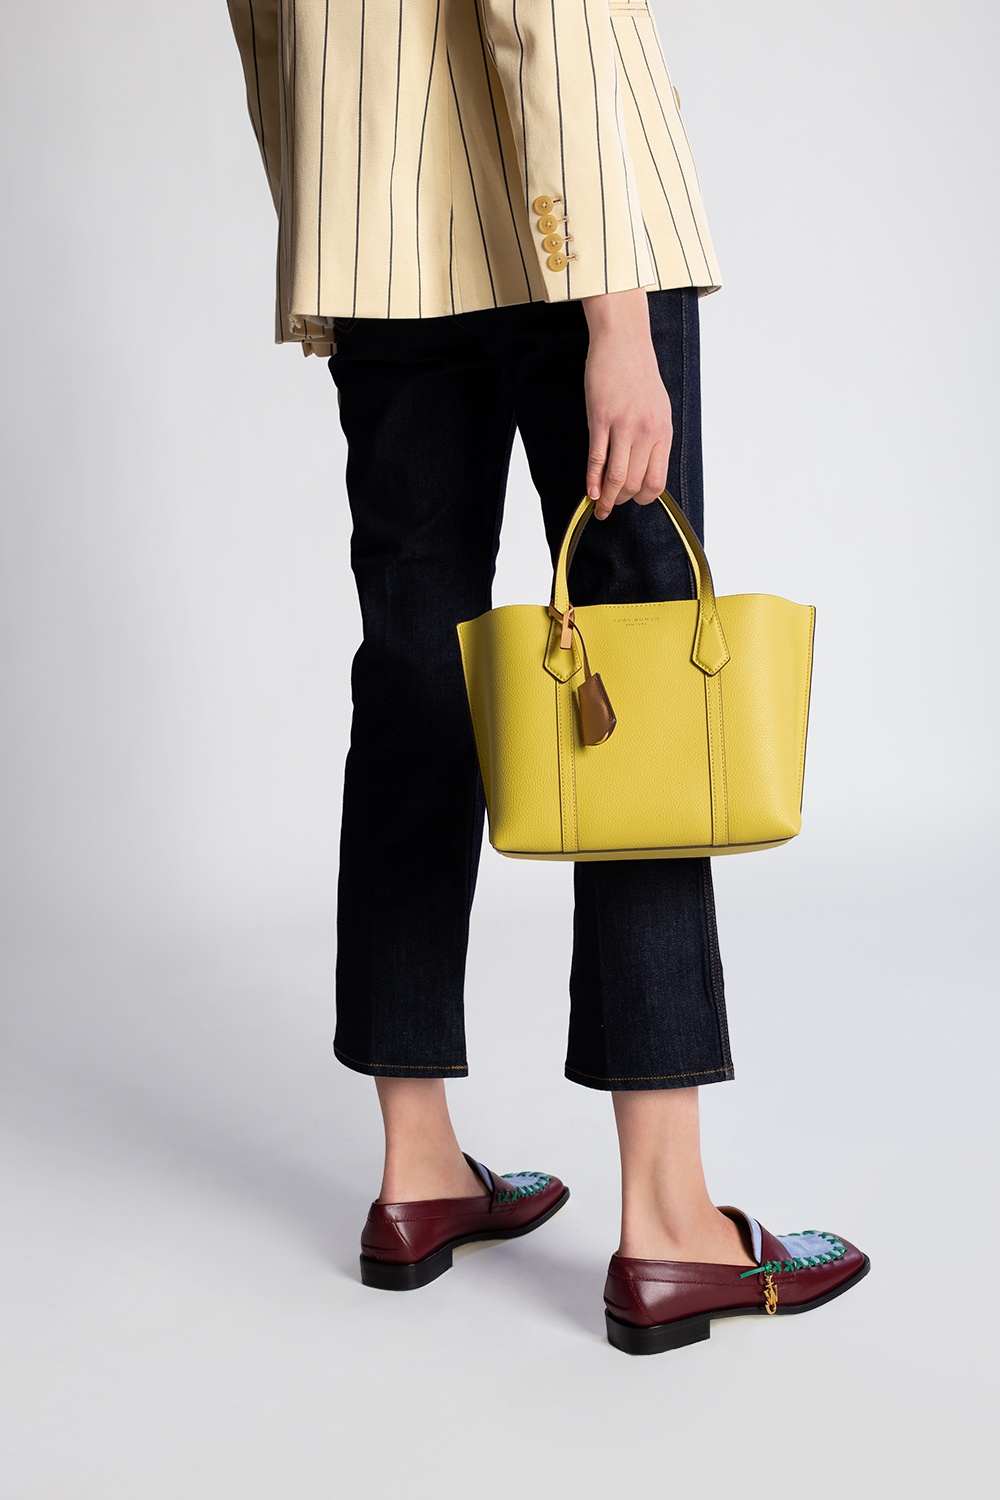 Tory Burch 'Perry' shoulder bag